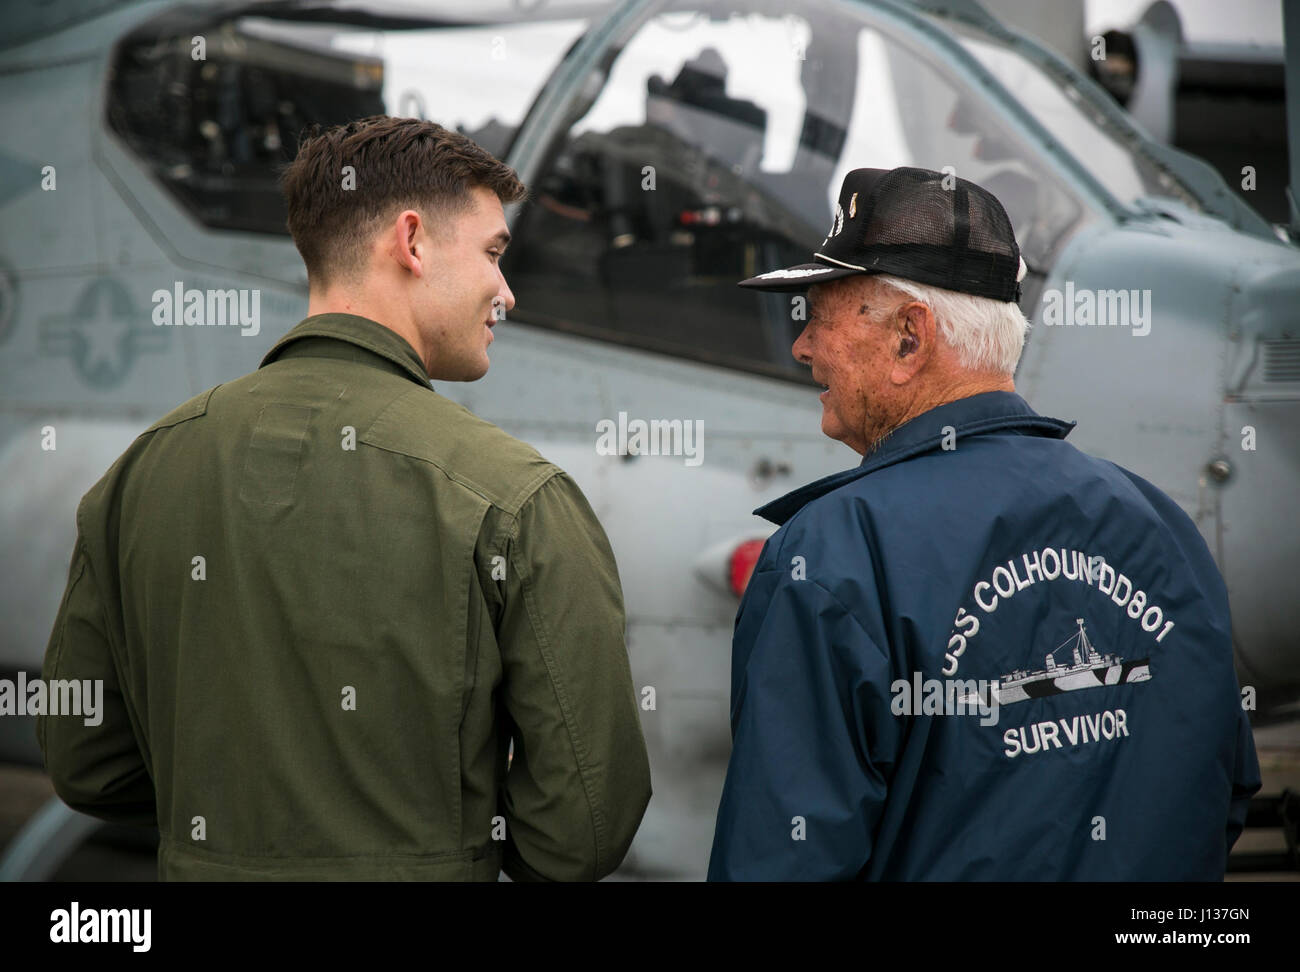 U.S. Marine Capt. Joe Hamlin gives Donald Irwin, a United States Navy World War II veteran, a tour of the Bell AH Stock Photo